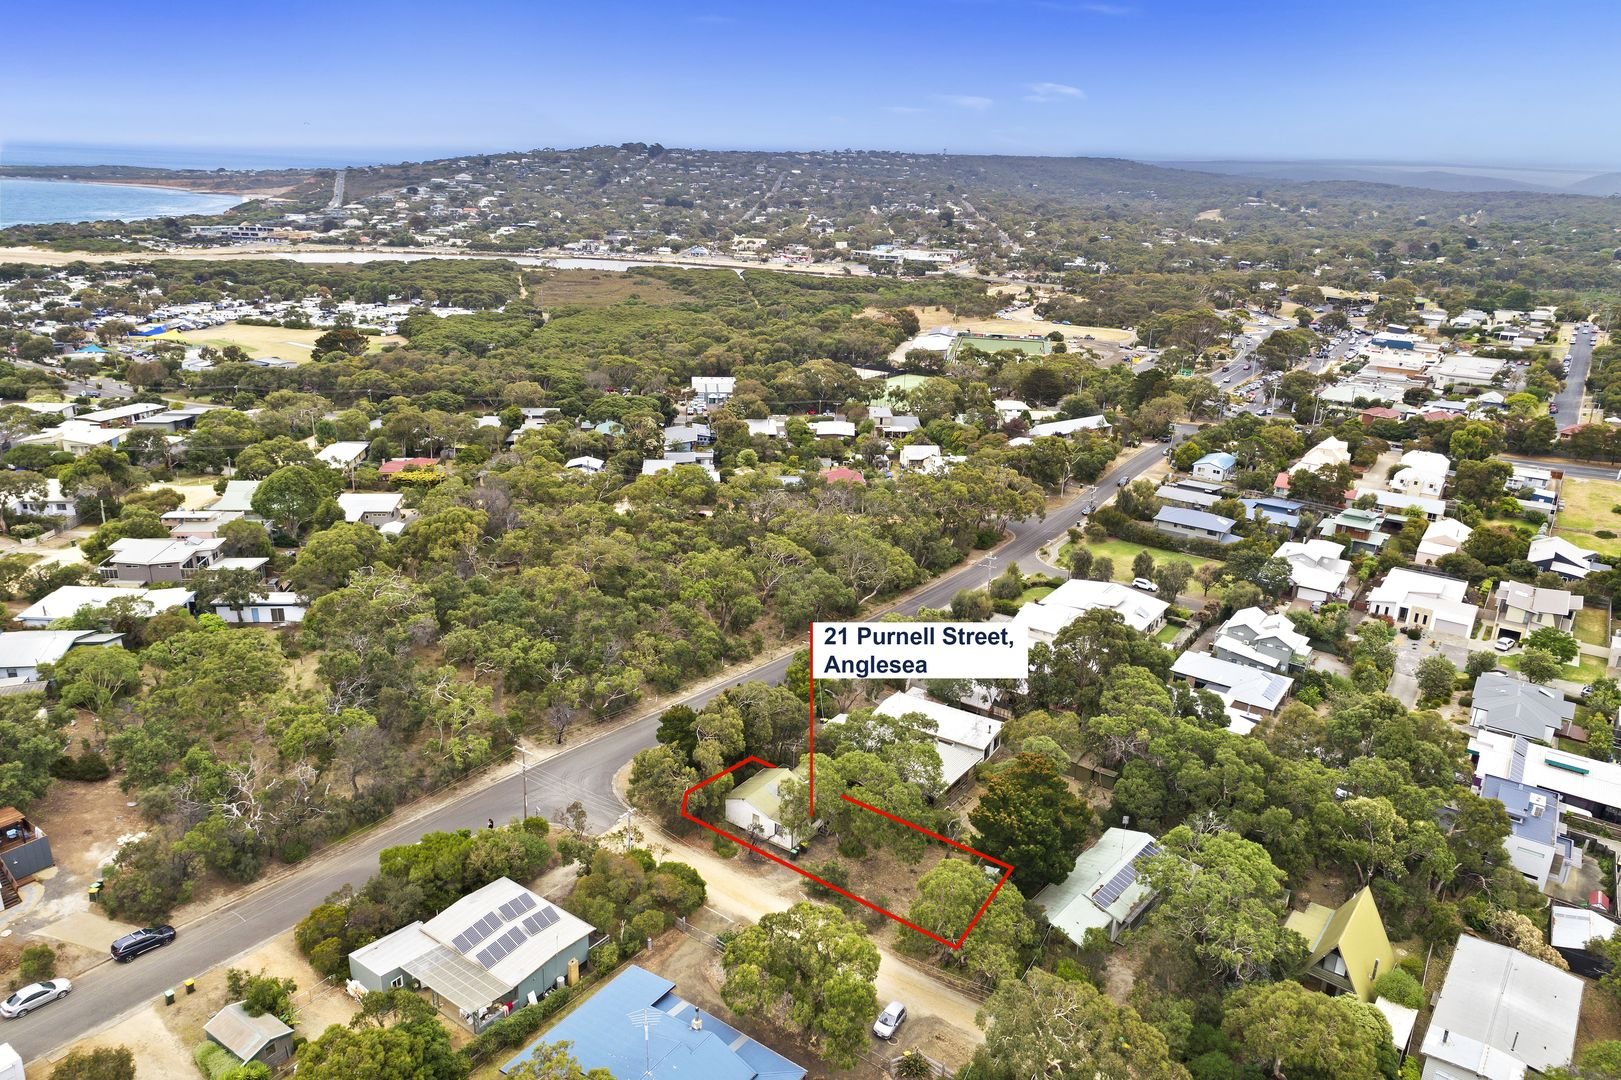 21 Purnell Street, Anglesea VIC 3230, Image 1